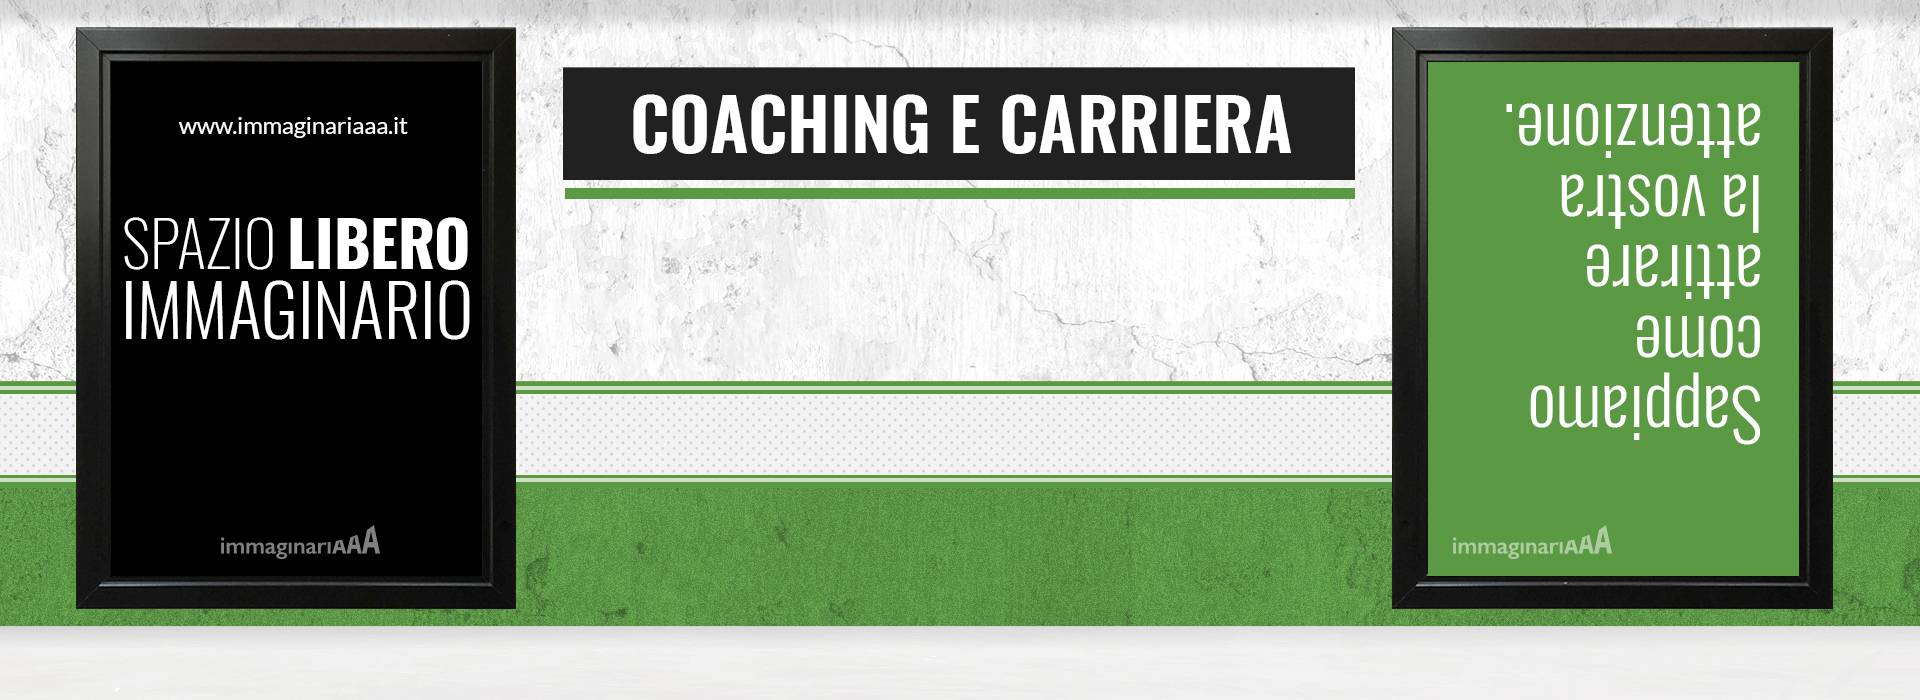 Coaching per la carriera